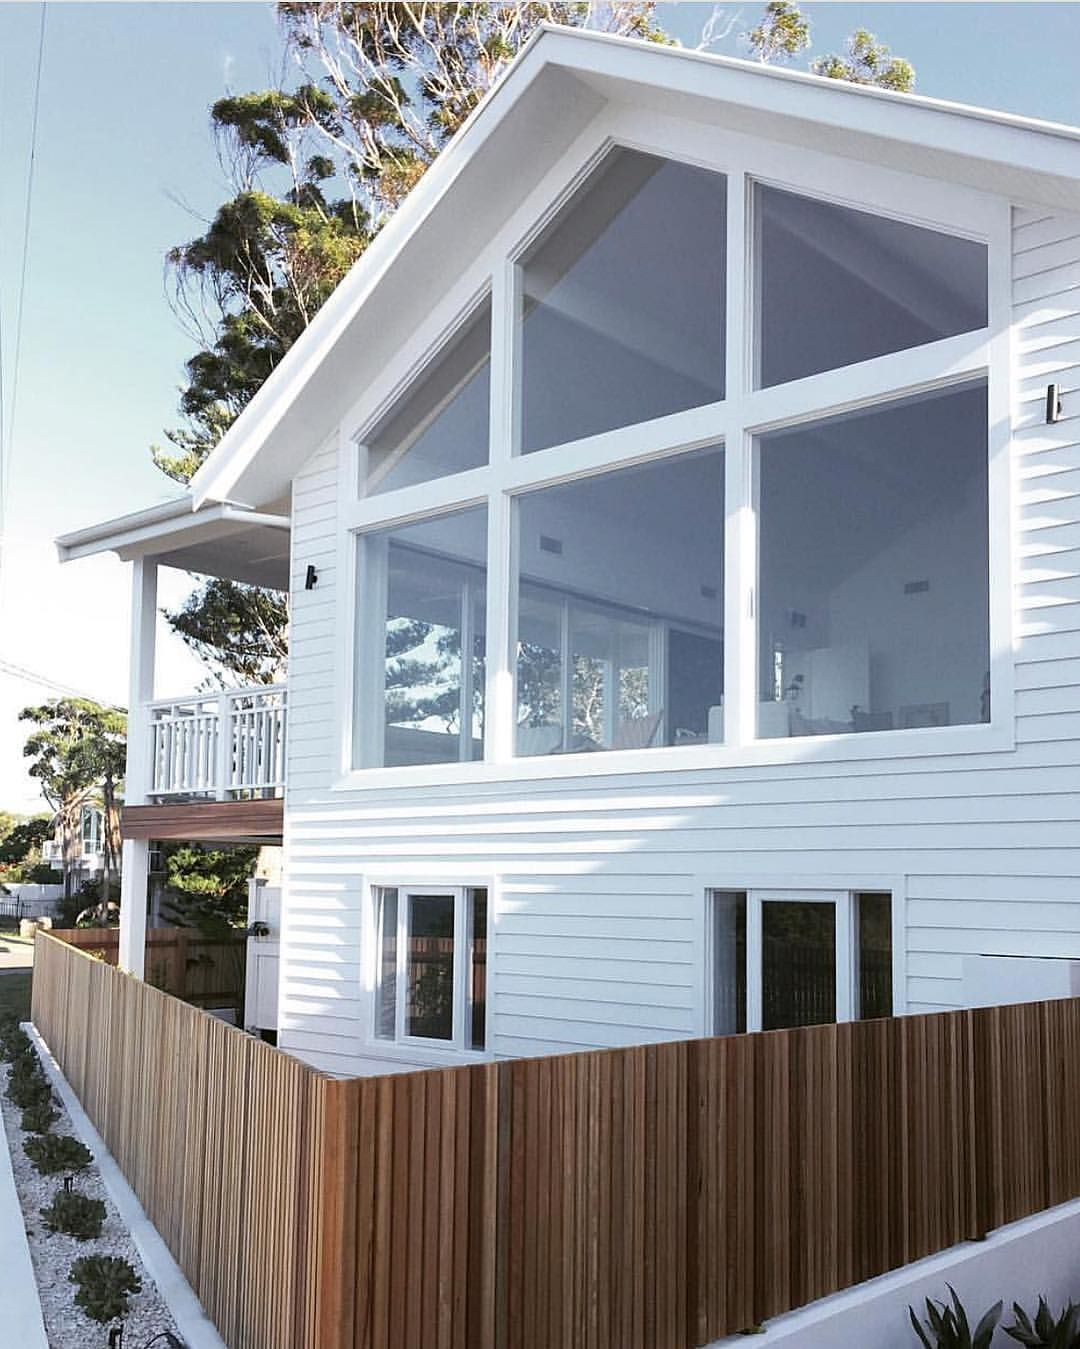 Bay window design exterior  pin by soraya grippi on ach house in   pinterest  house